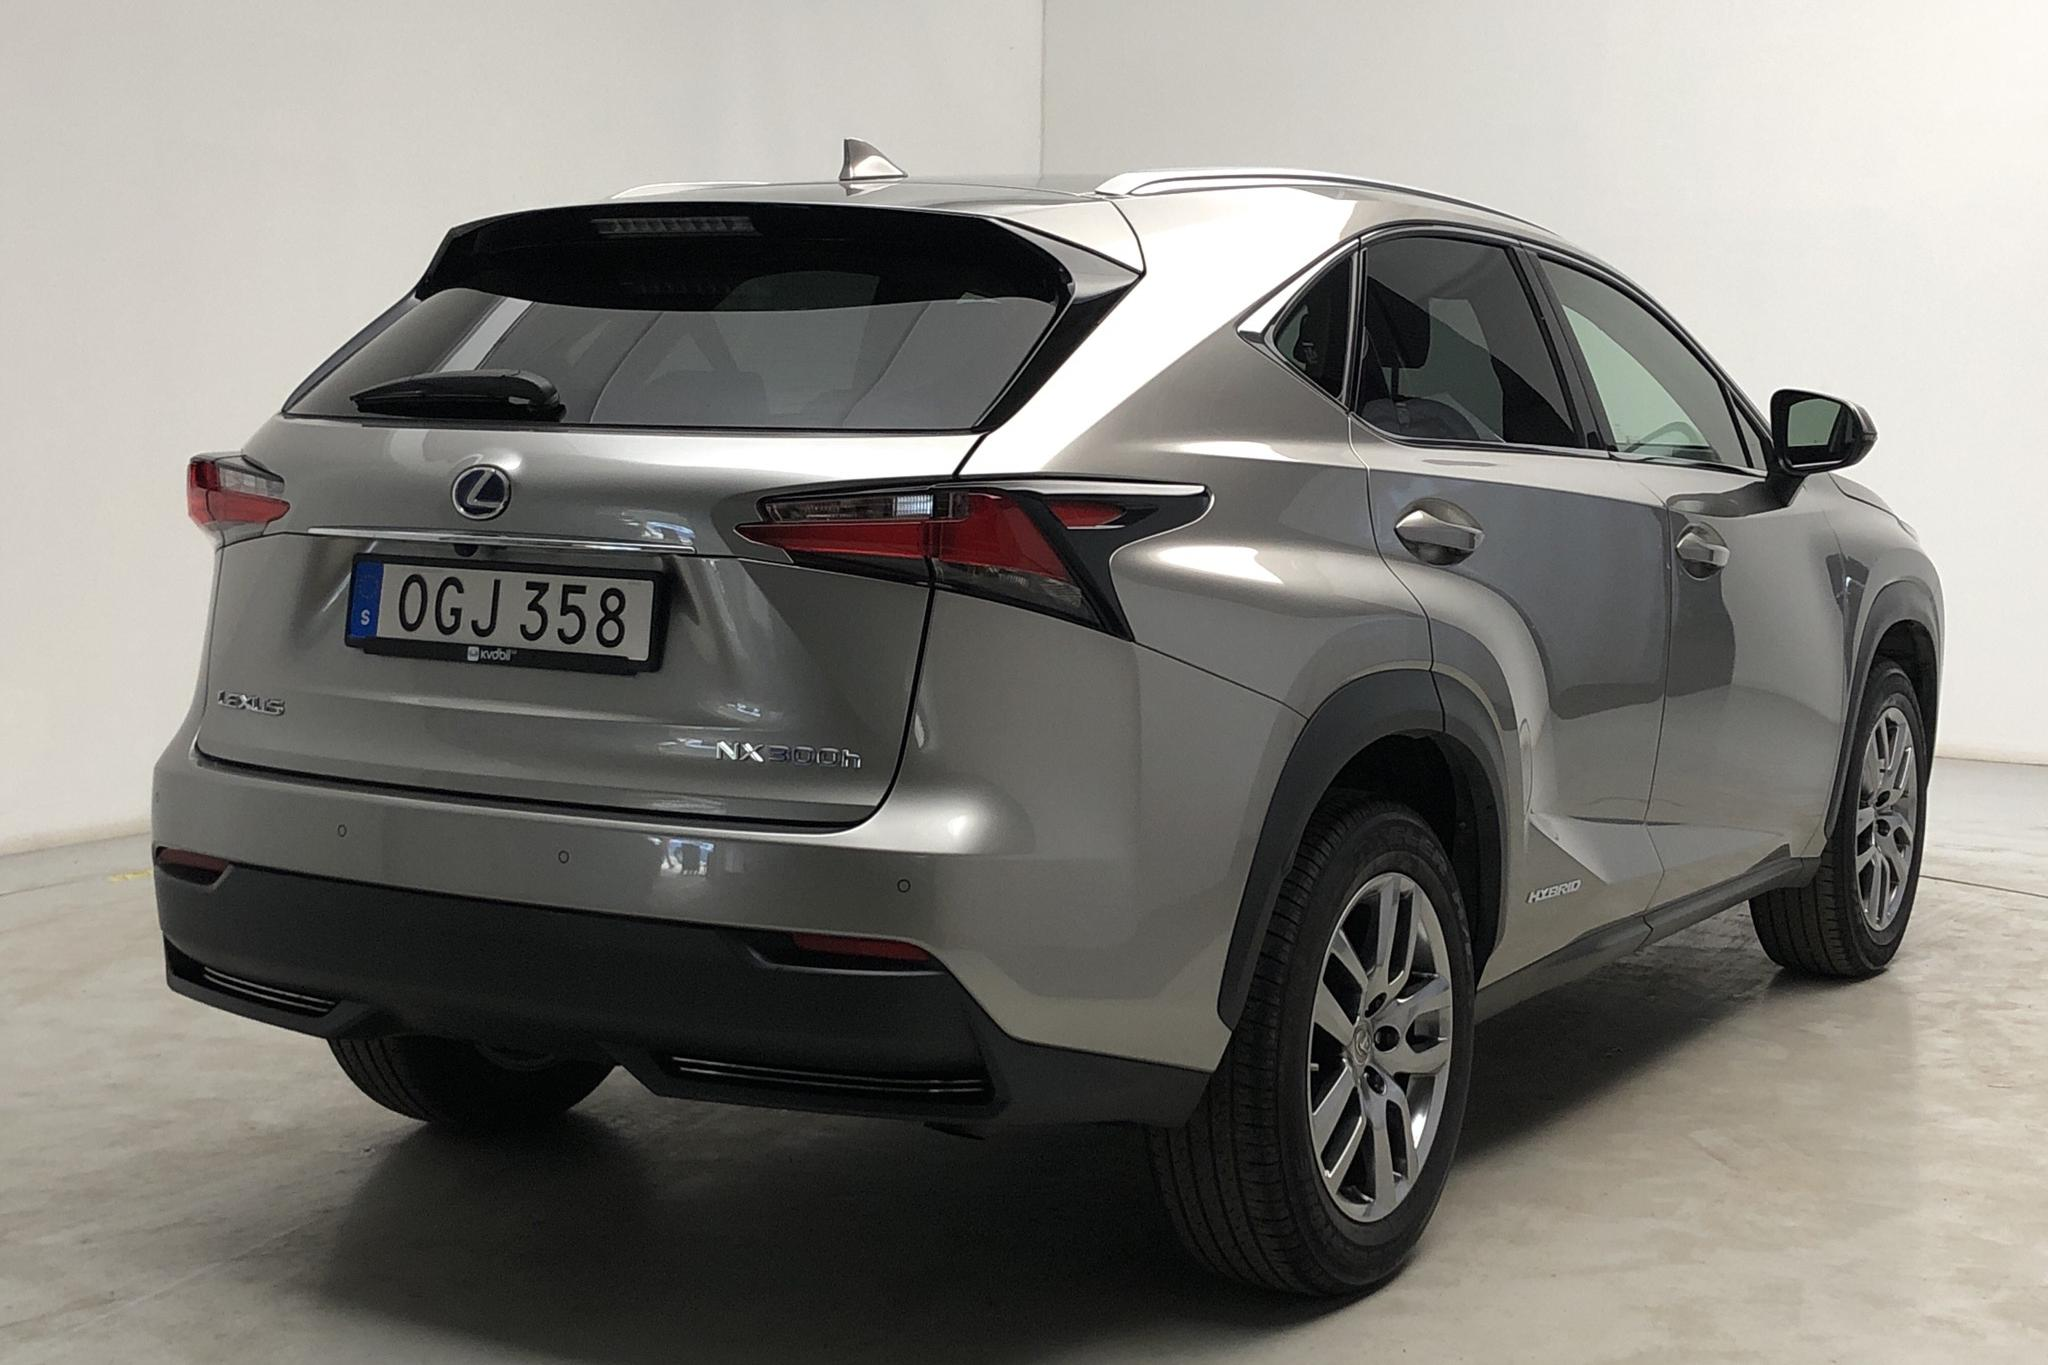 Lexus NX 300h AWD (181hk) - 6 162 mil - Automat - Light Grey - 2016